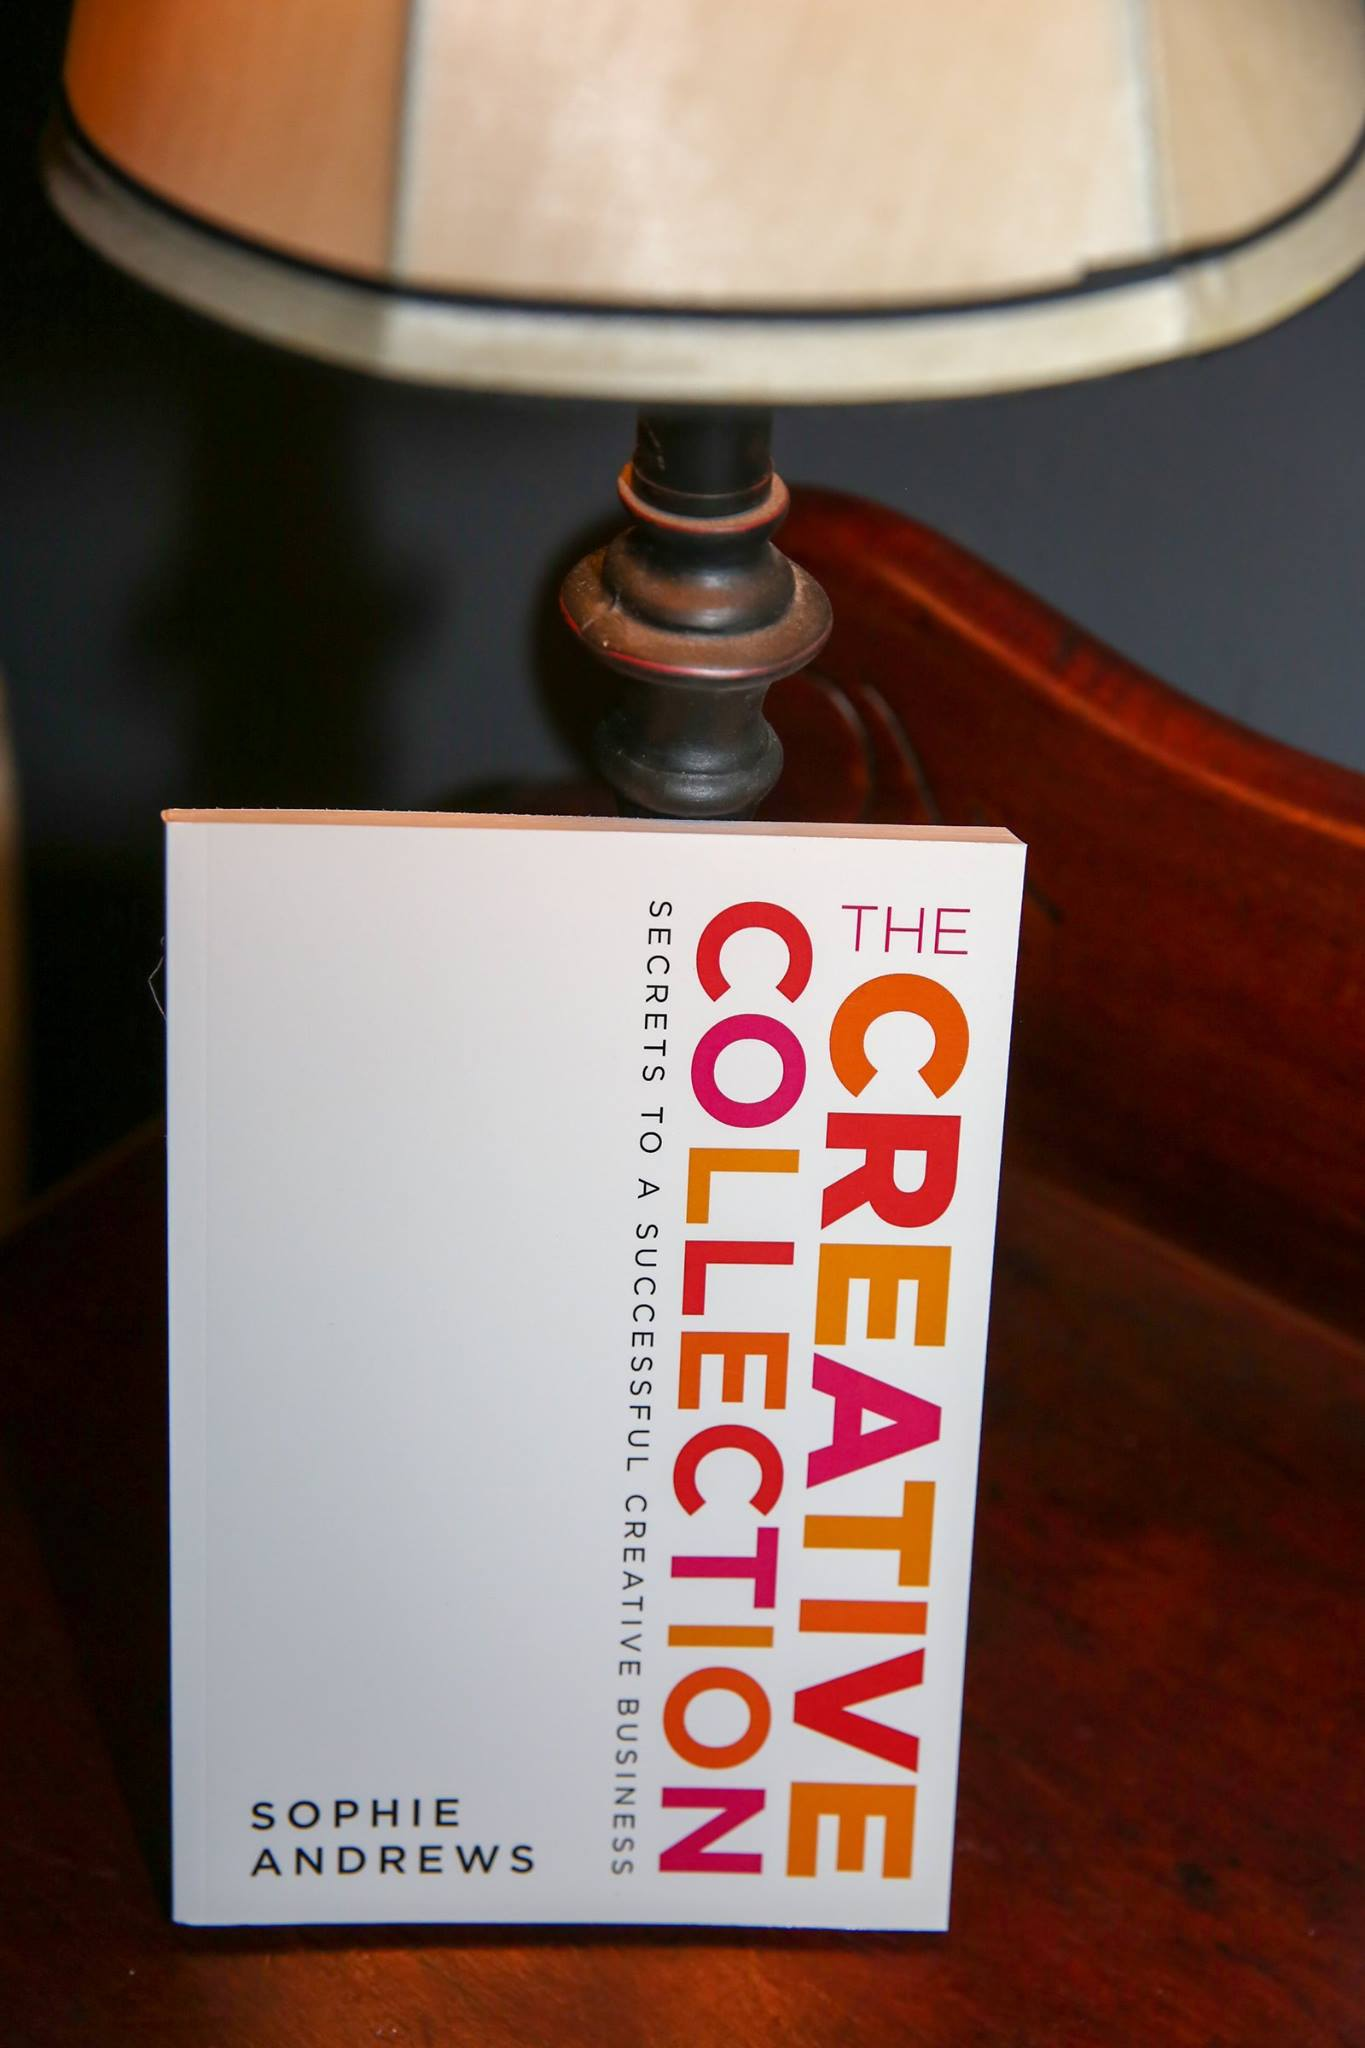 Excellent giveaways included this practical and highly recommended book for every creative, 'The Creative Collection', by Sophie Andrews, founder The Accounts Studio.